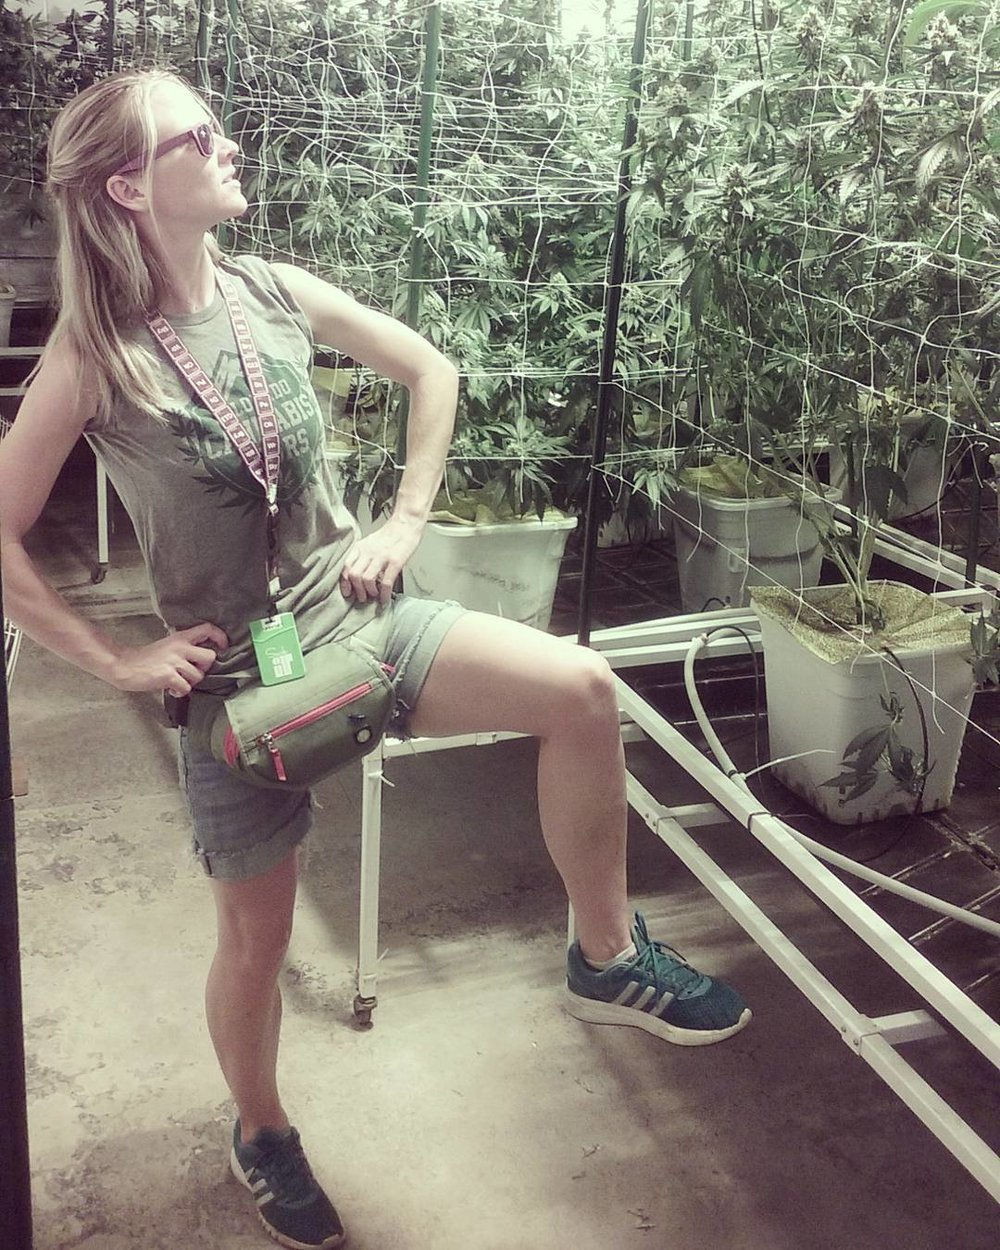 Lia Arntsen   Lia is a cannabis fitness coach, educator, and entrepreneur.Besides running her  Huff N Puff Fitness Classes ,  Lia  also runs  You Canna Be Well,  and sells her own cannabis flights at  First Class Flights . She recently completed her first full marathon in 2017, and has competed in every Colorado 420 Games!